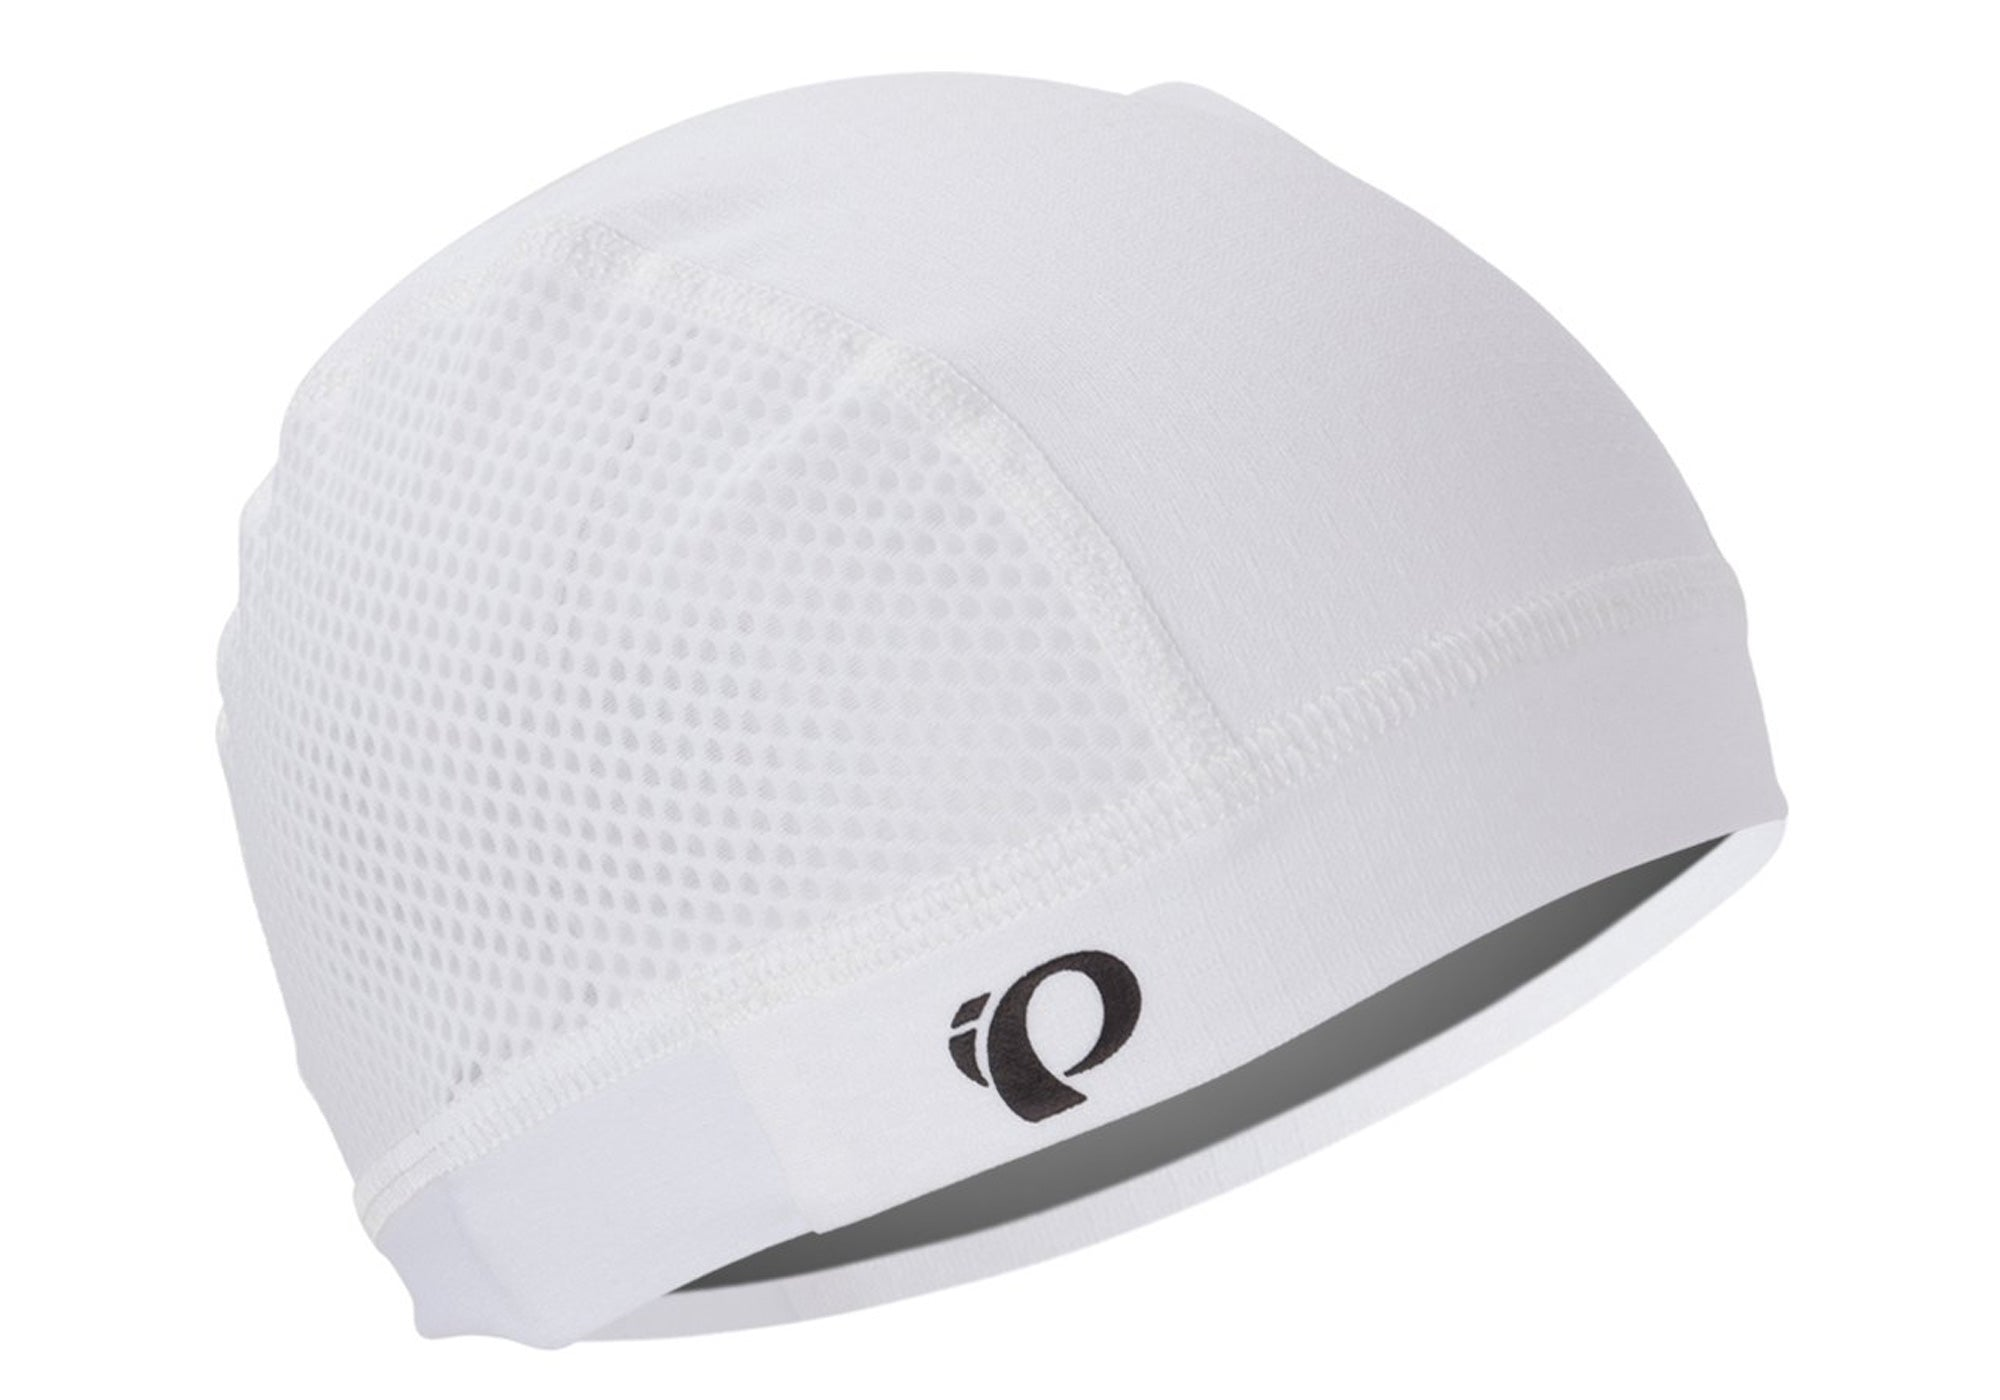 Pearl Izumi INRCOOL Skull Cap, White, One Size Fits All